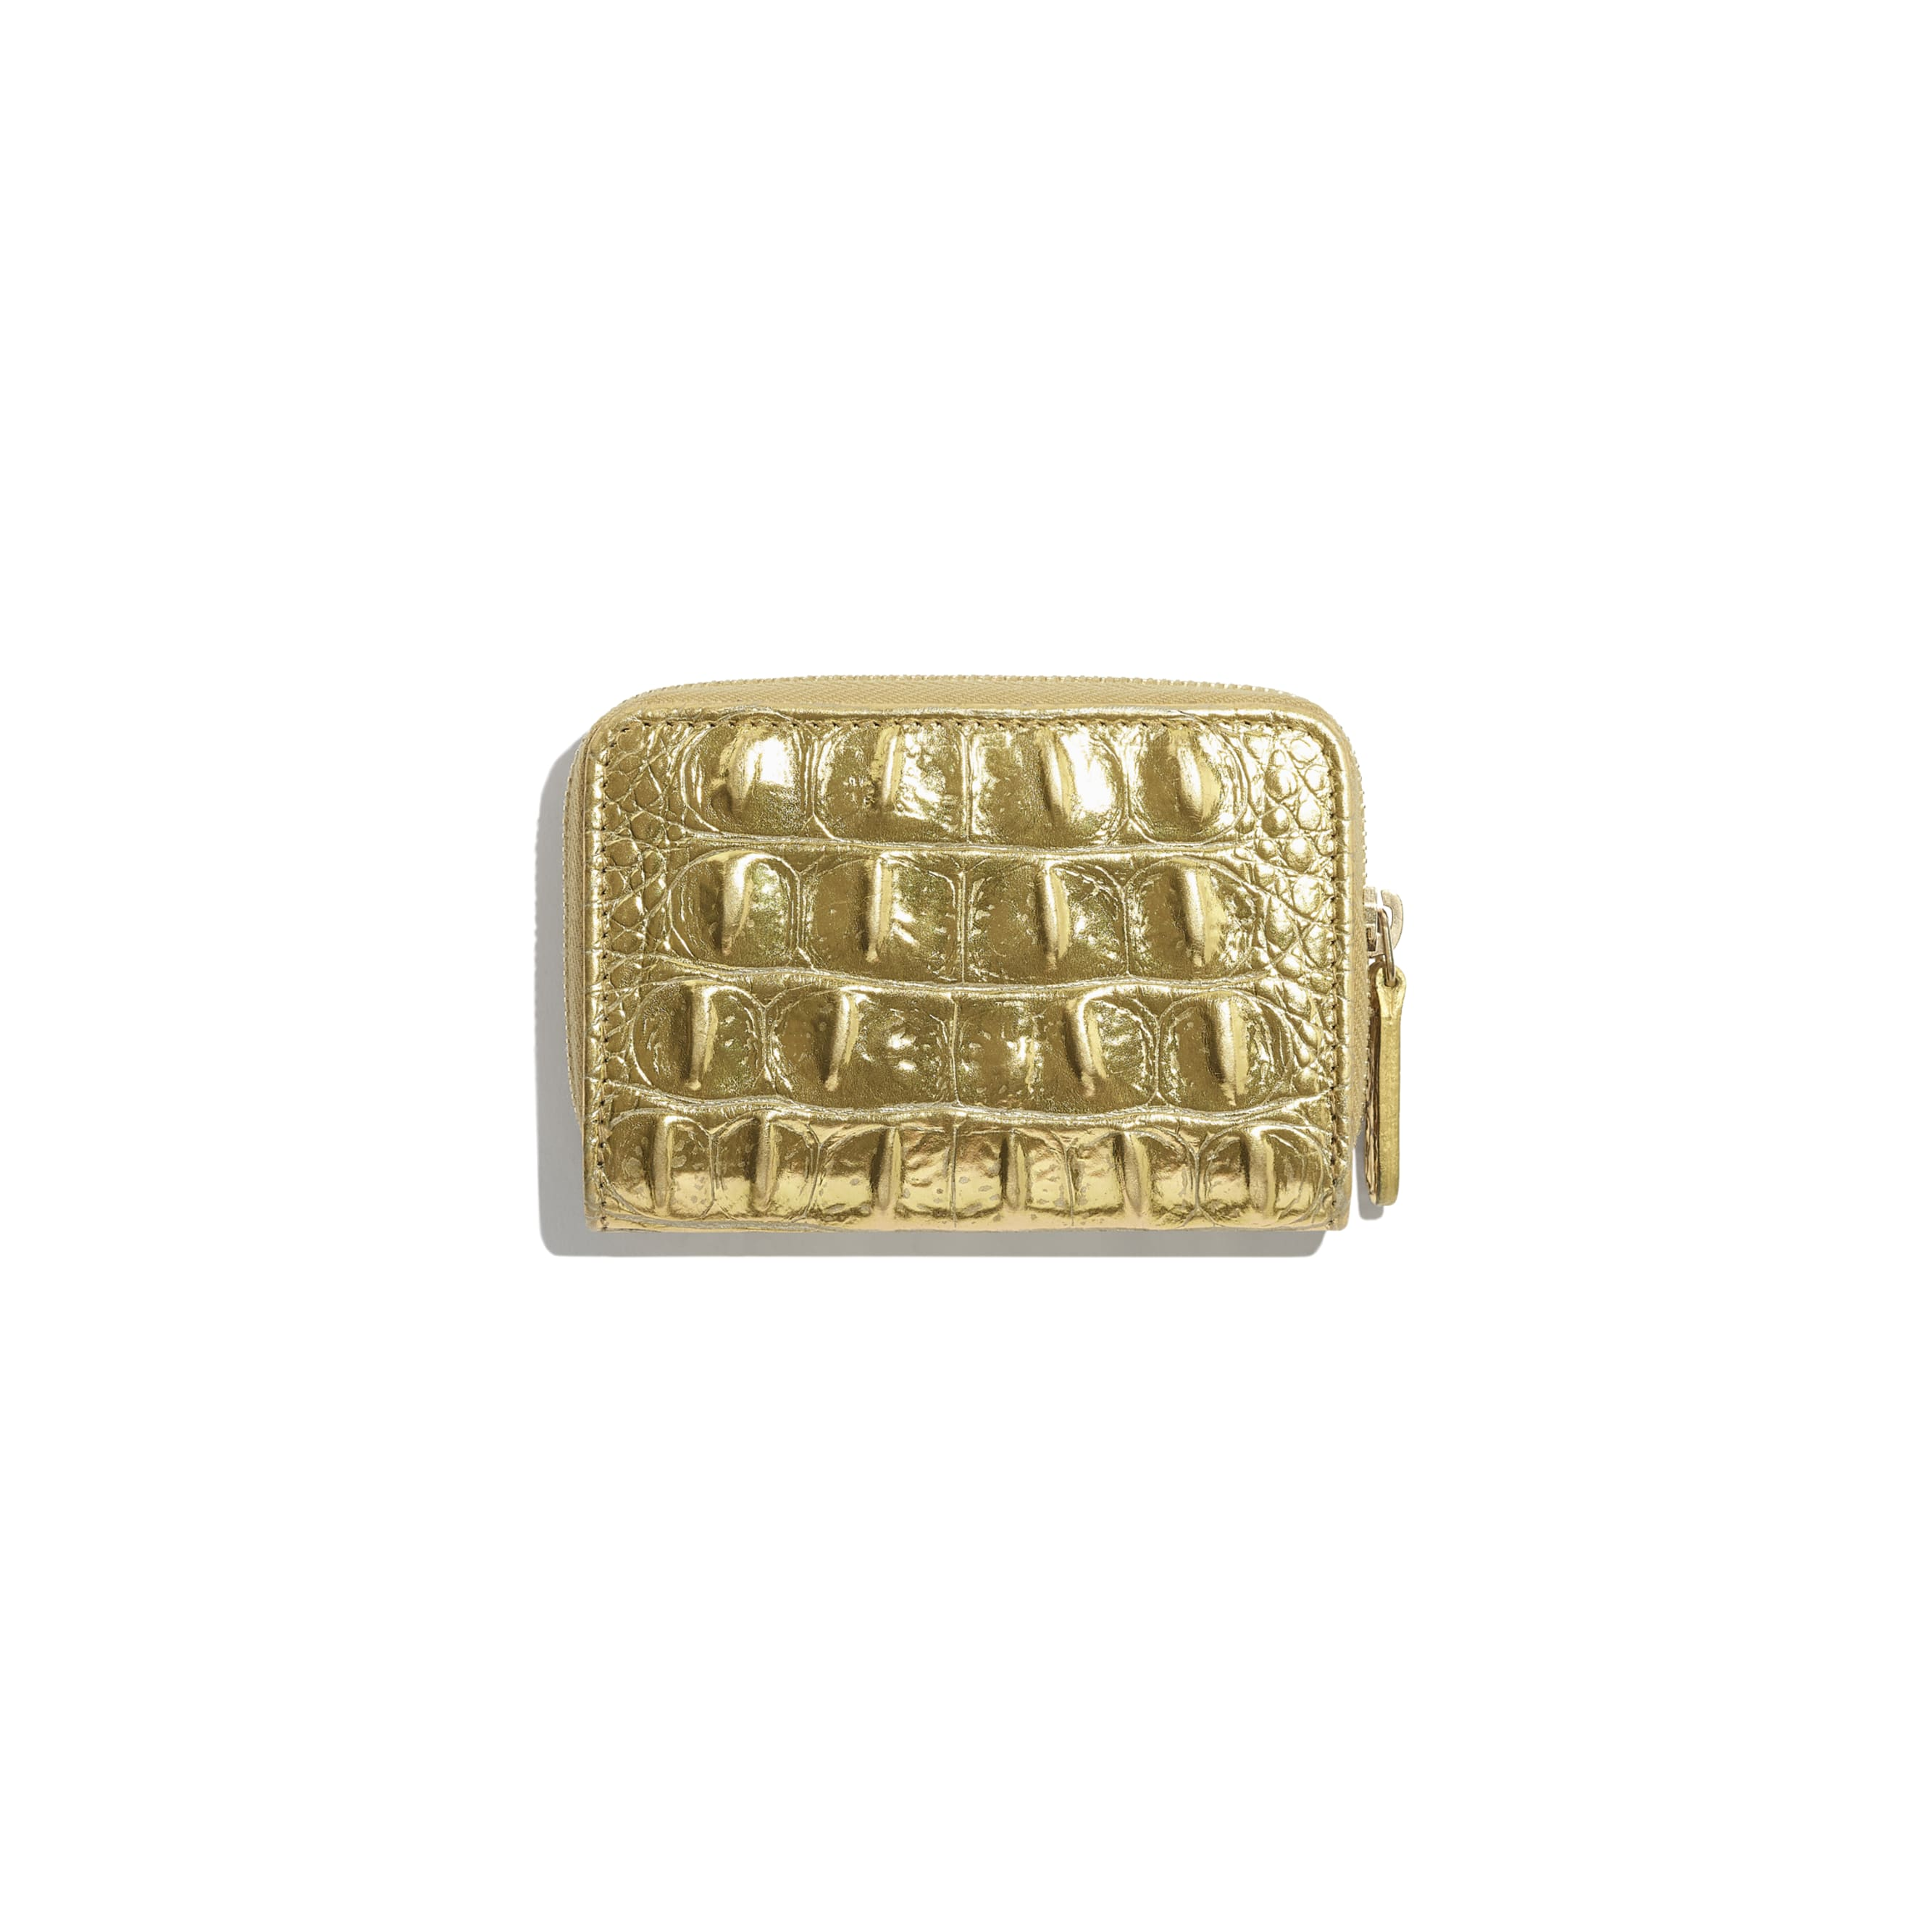 Classic Zipped Coin Purse - Gold - Metallic Crocodile Embossed Calfskin & Gold Metal - Alternative view - see standard sized version